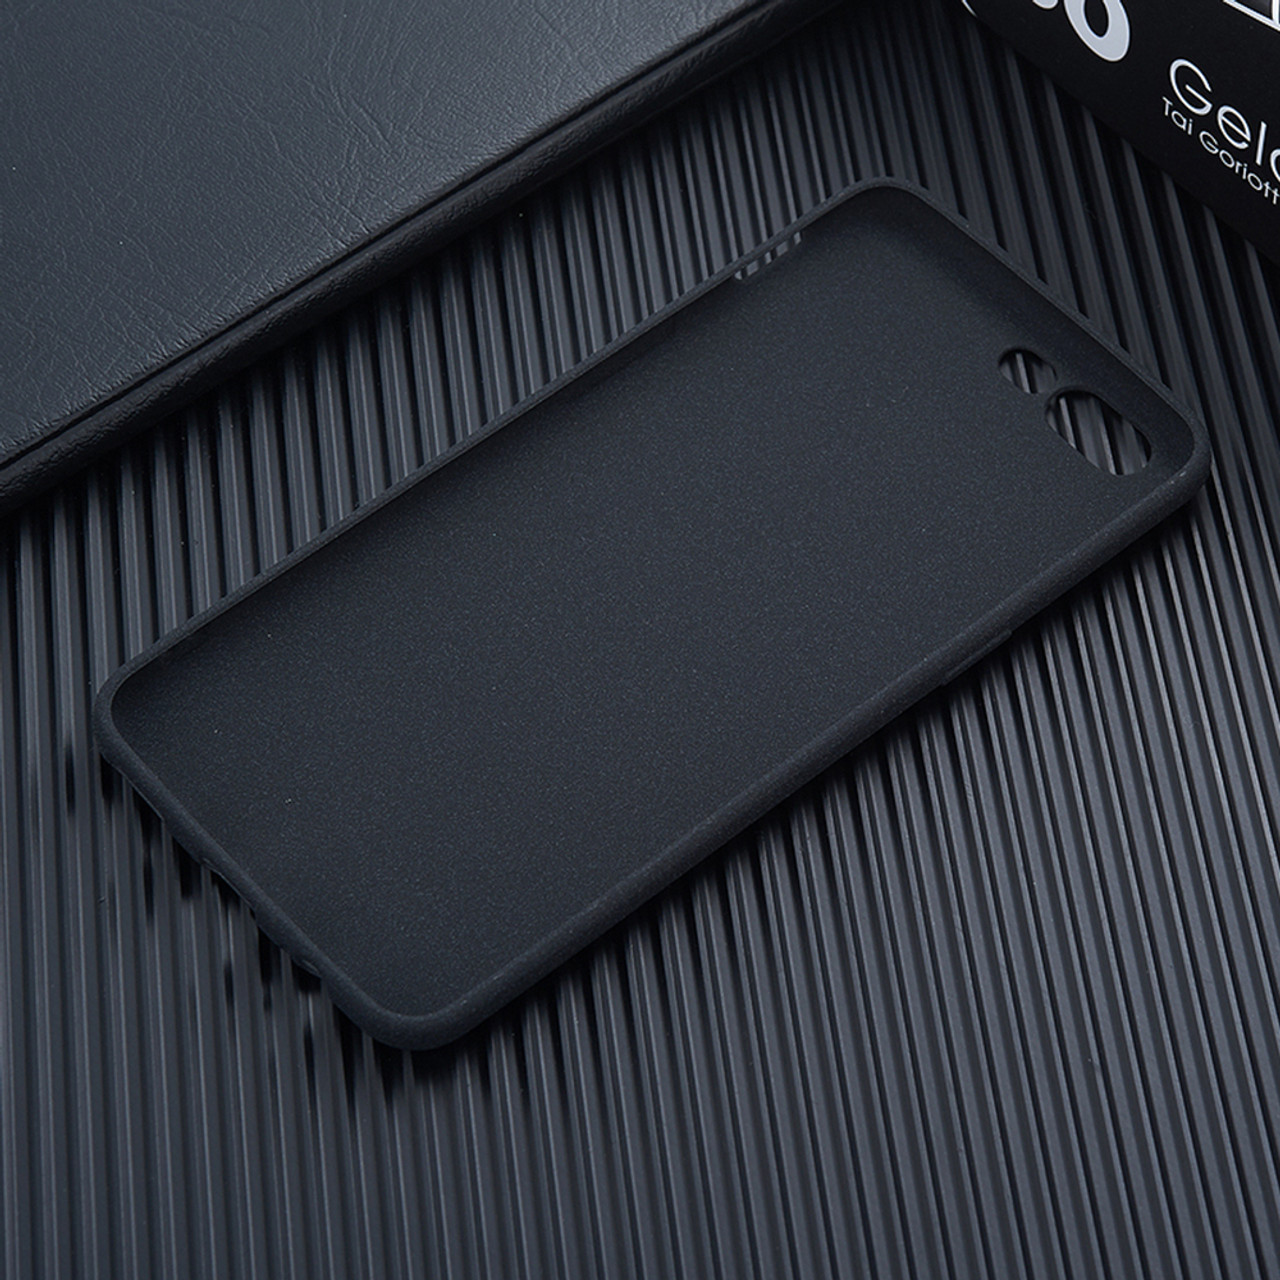 uk availability ef818 87a7b Case For OnePlus 5T One Plus 5T 1+5T Matte Back Covers Soft Dirt Resistant  Phone Bag Cases for OnePlus 6 5 One Plus 6 5 1+5 ZGAR